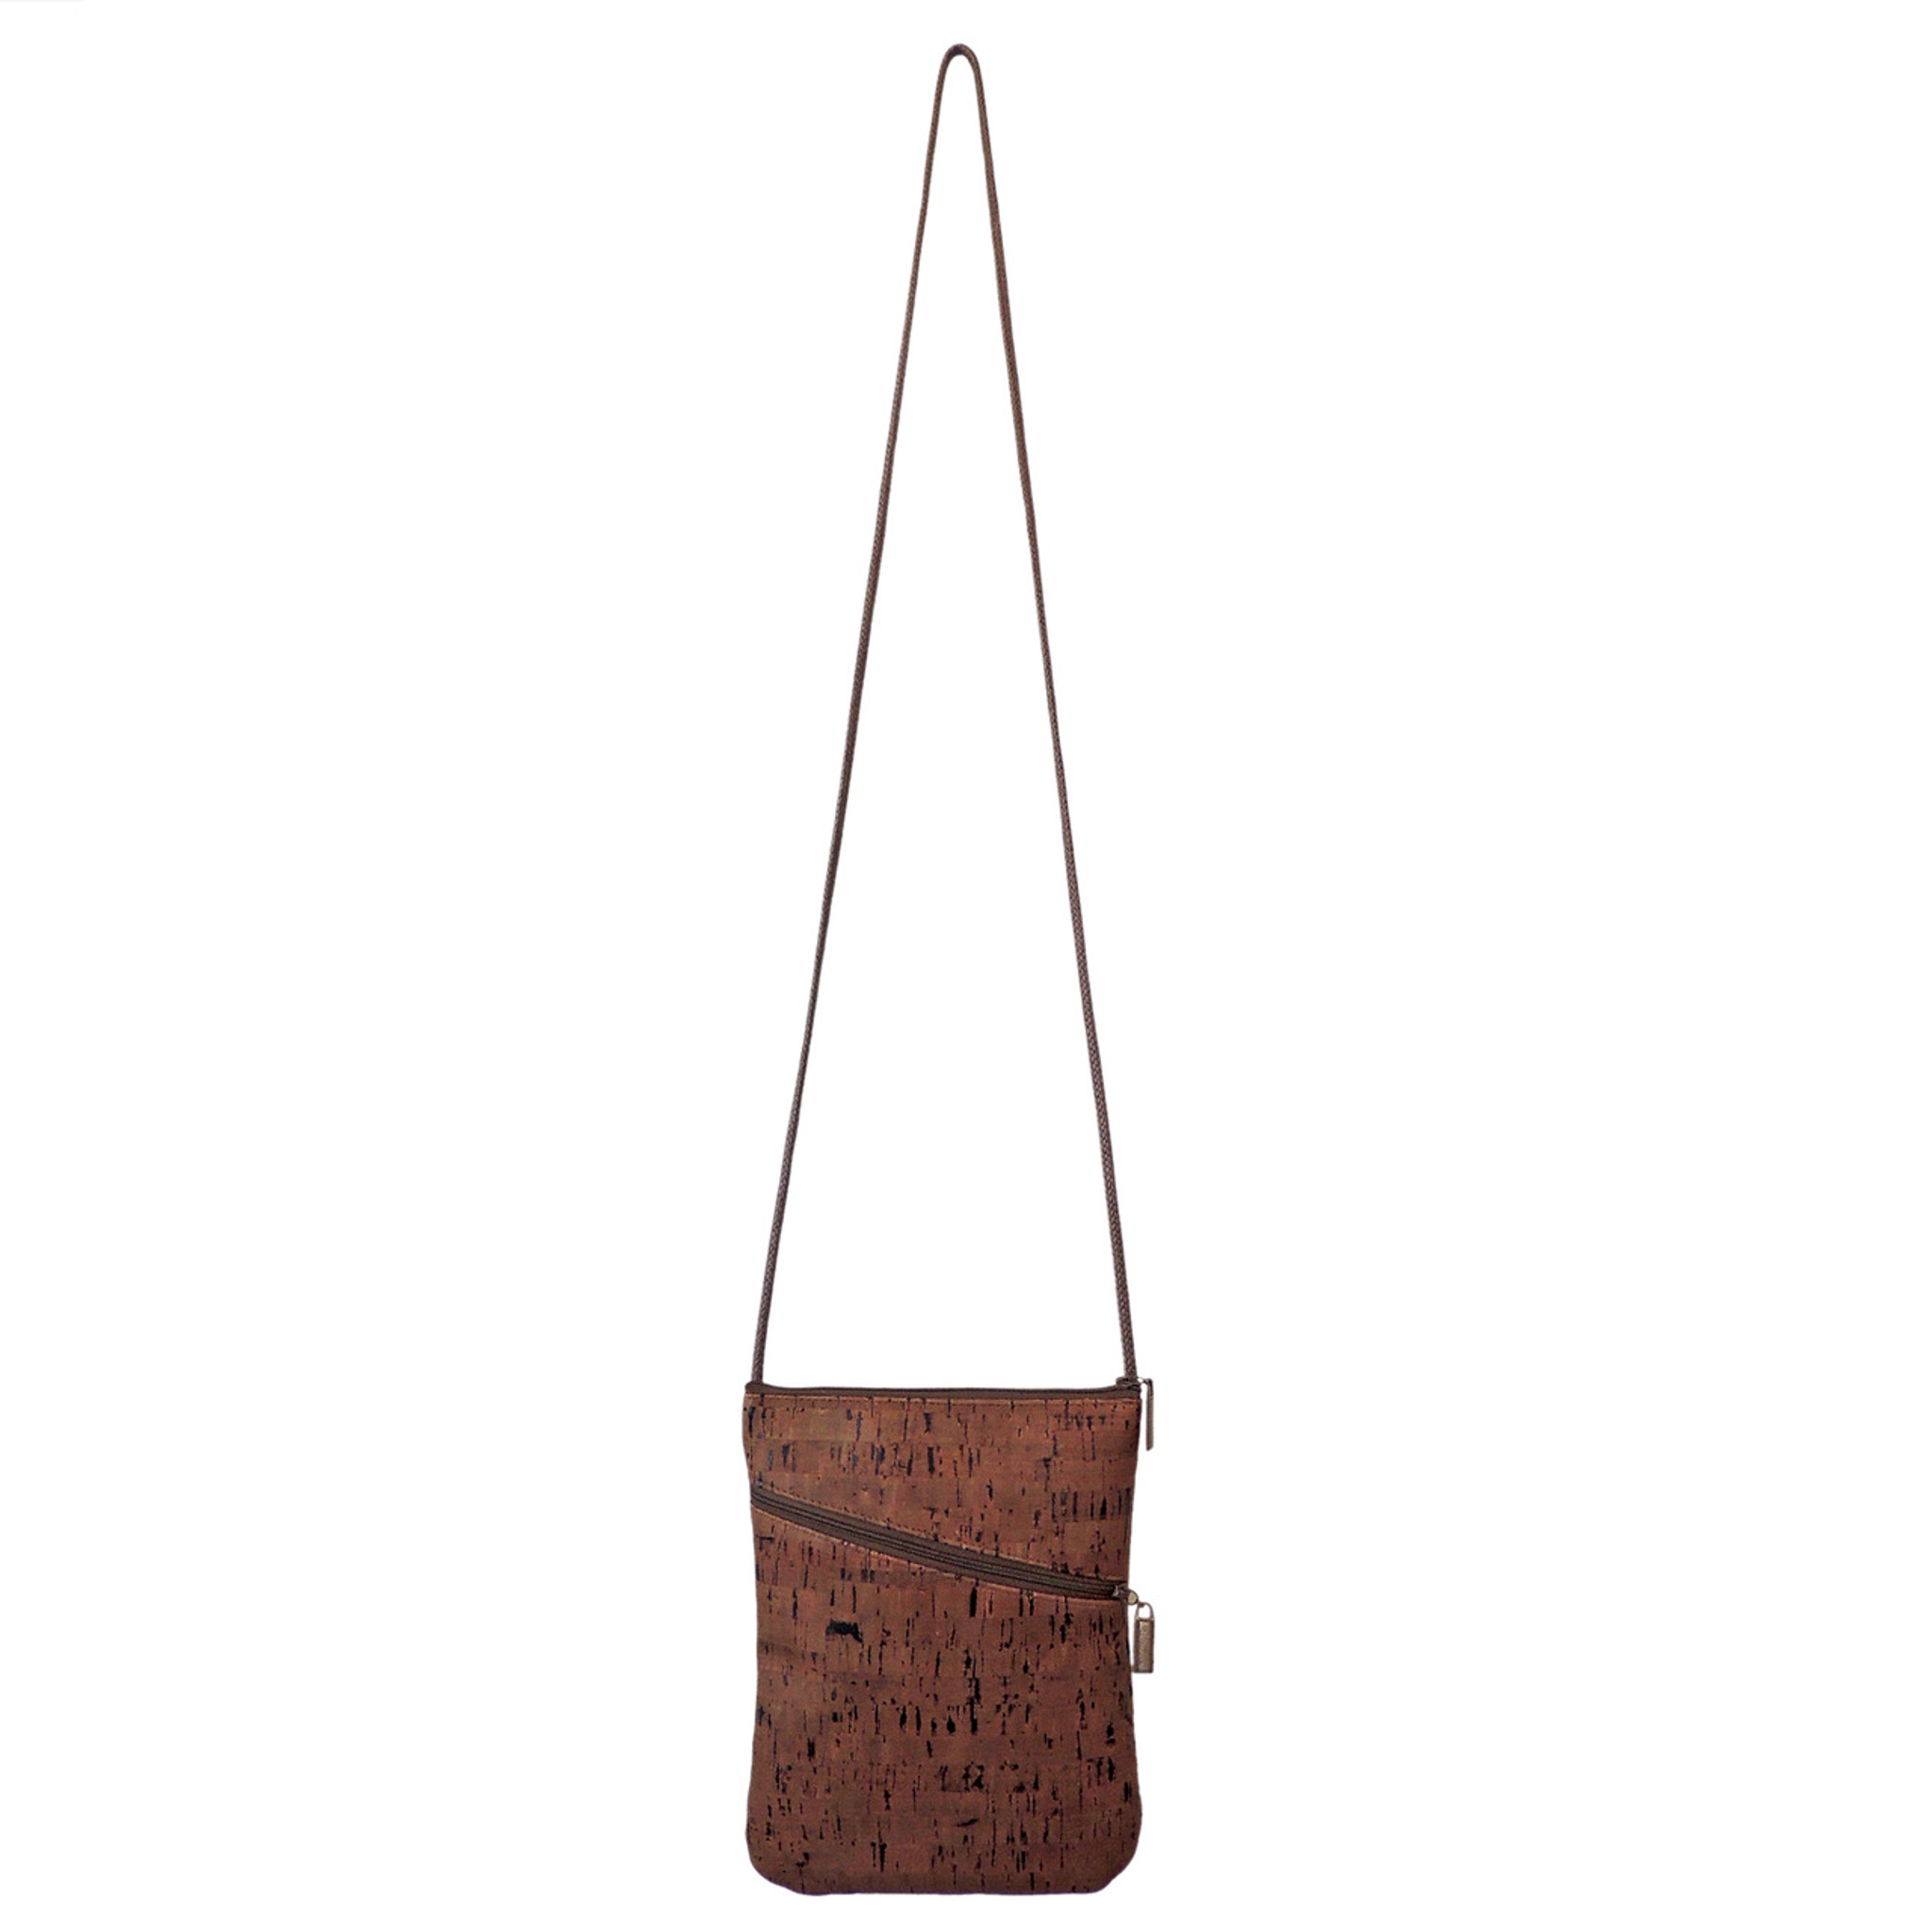 Cork Social Bag in Cork Dash Brow